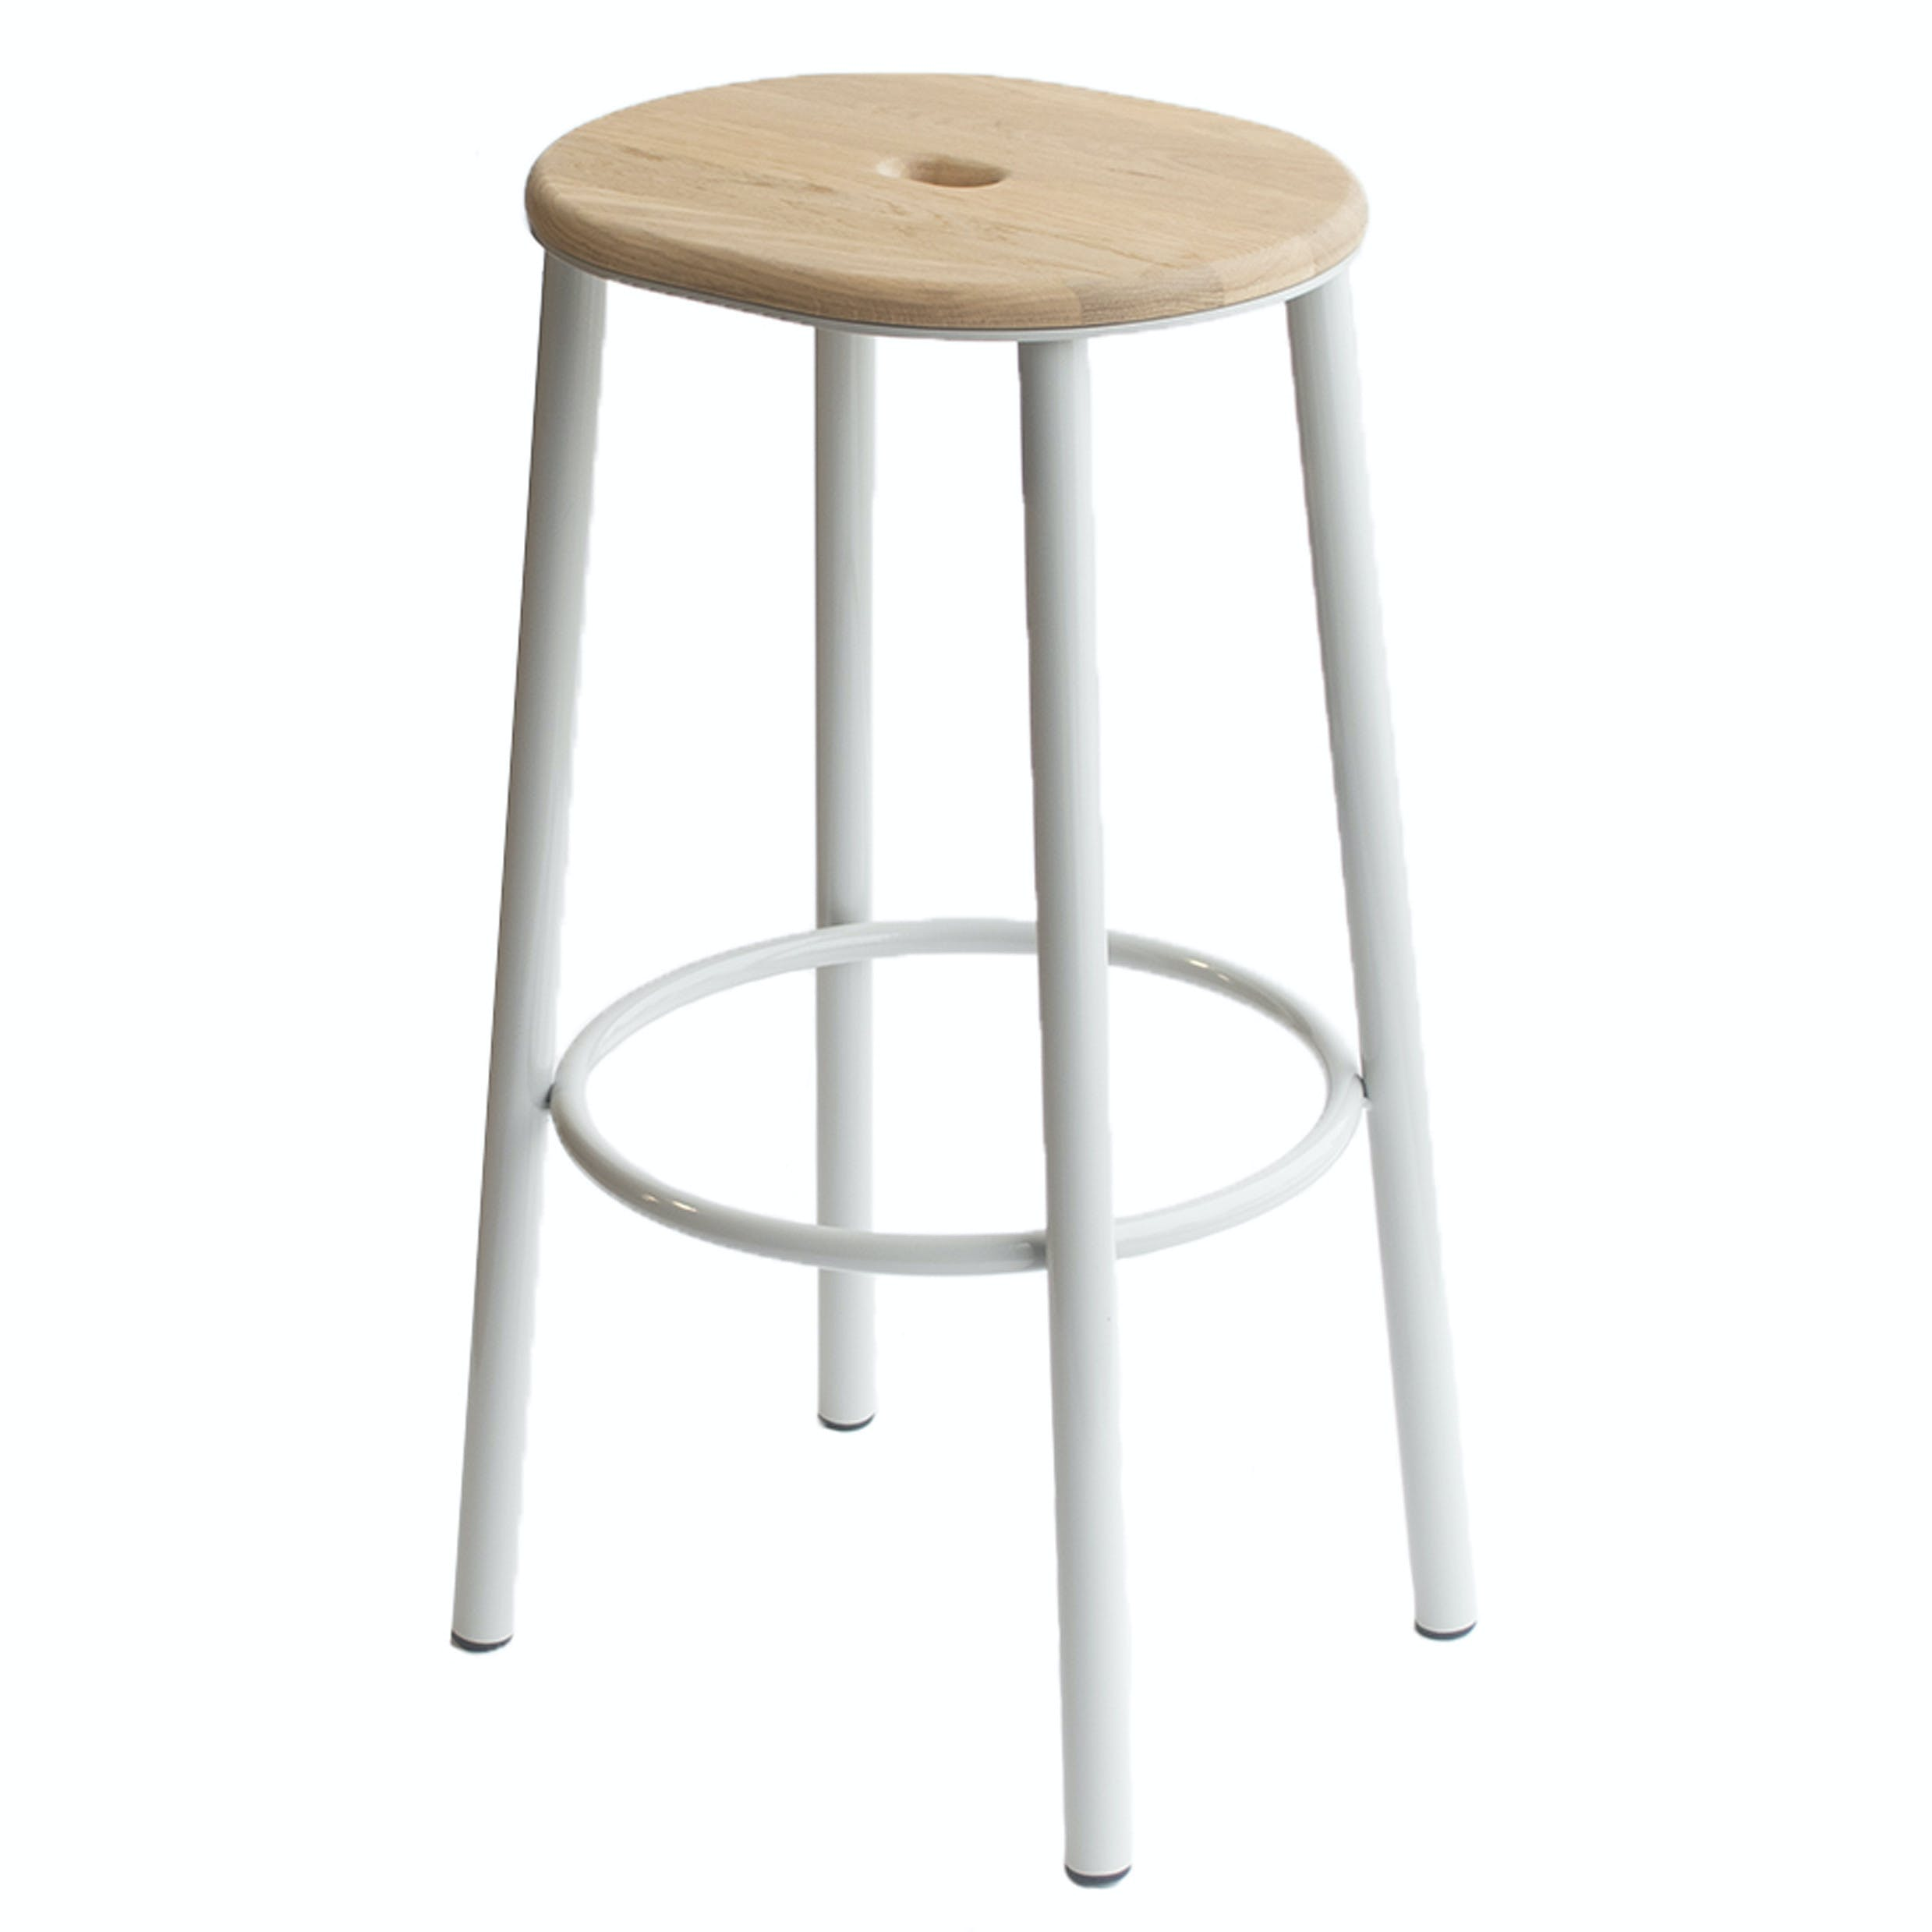 Division-12-deck-bar-stool-white-legs-haute-living_190218_223852